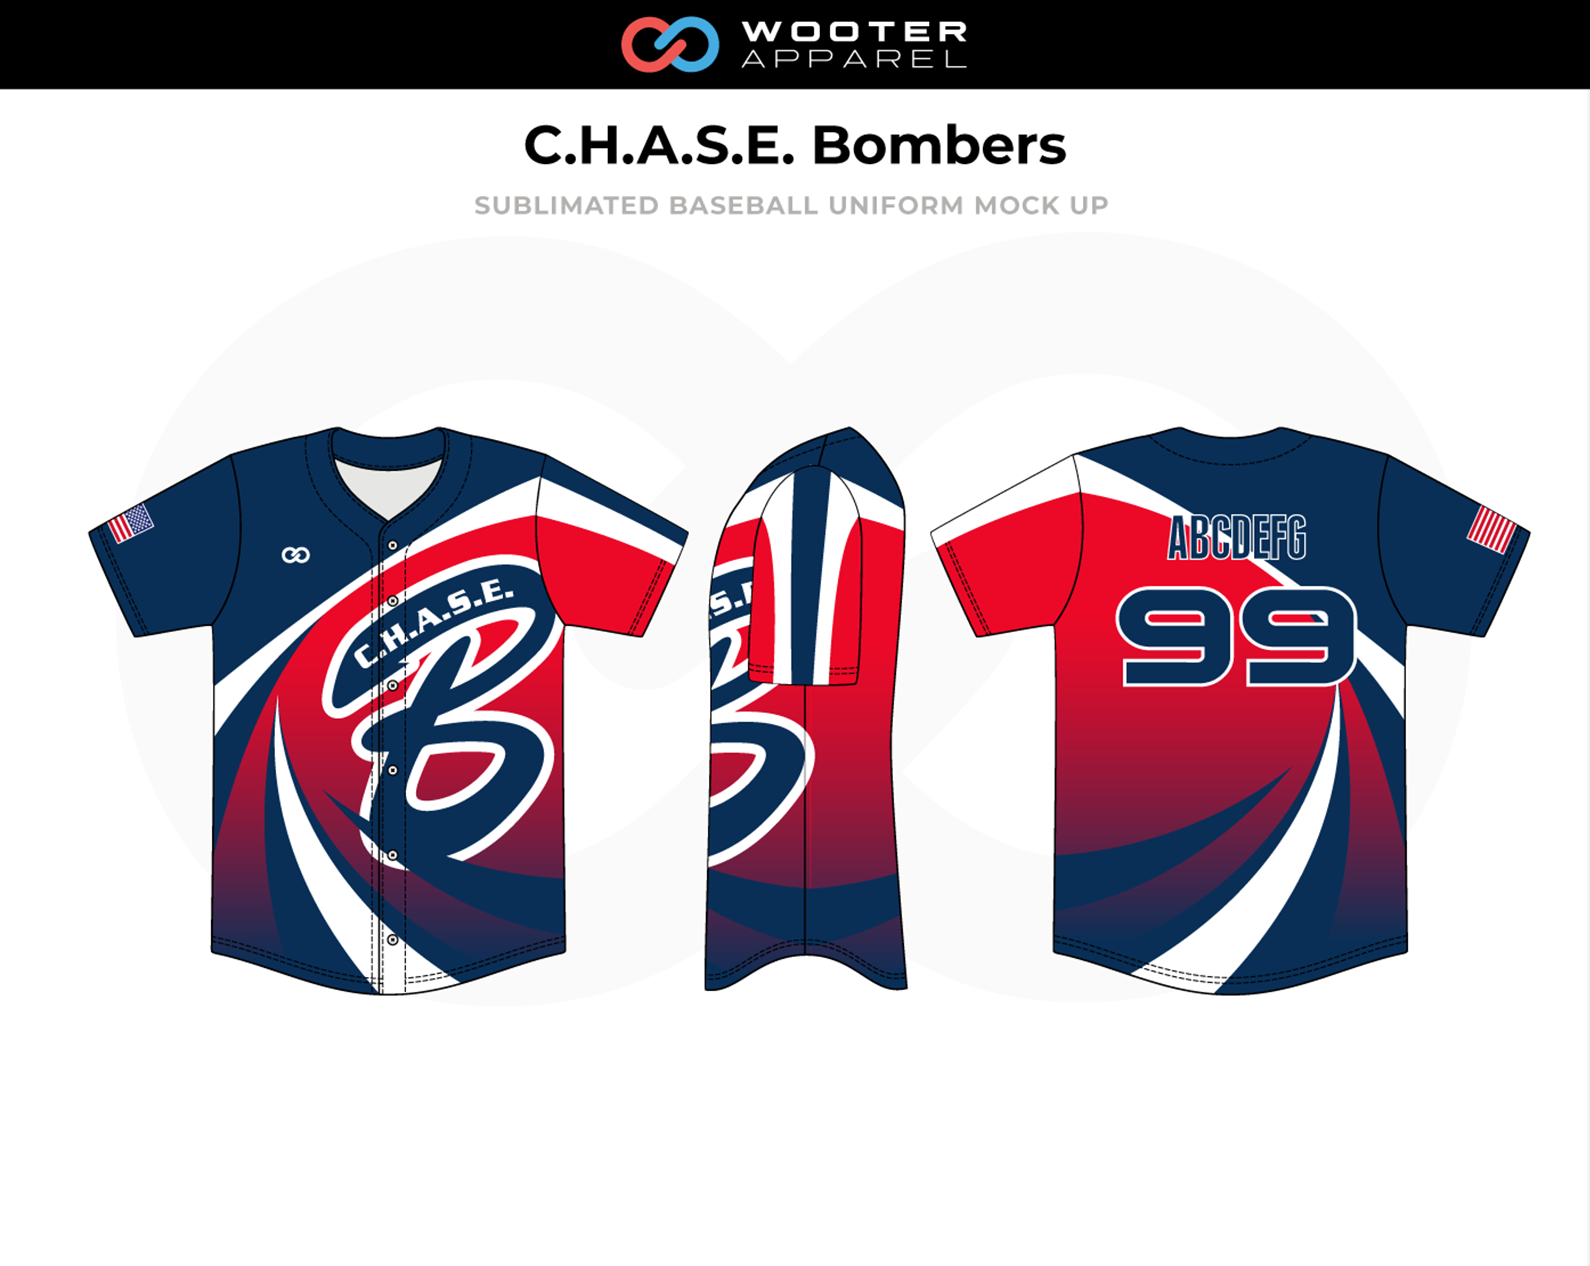 C.H.A.S.E.-Bombers-Sublimated-Baseball-Uniform_v3_2018.png